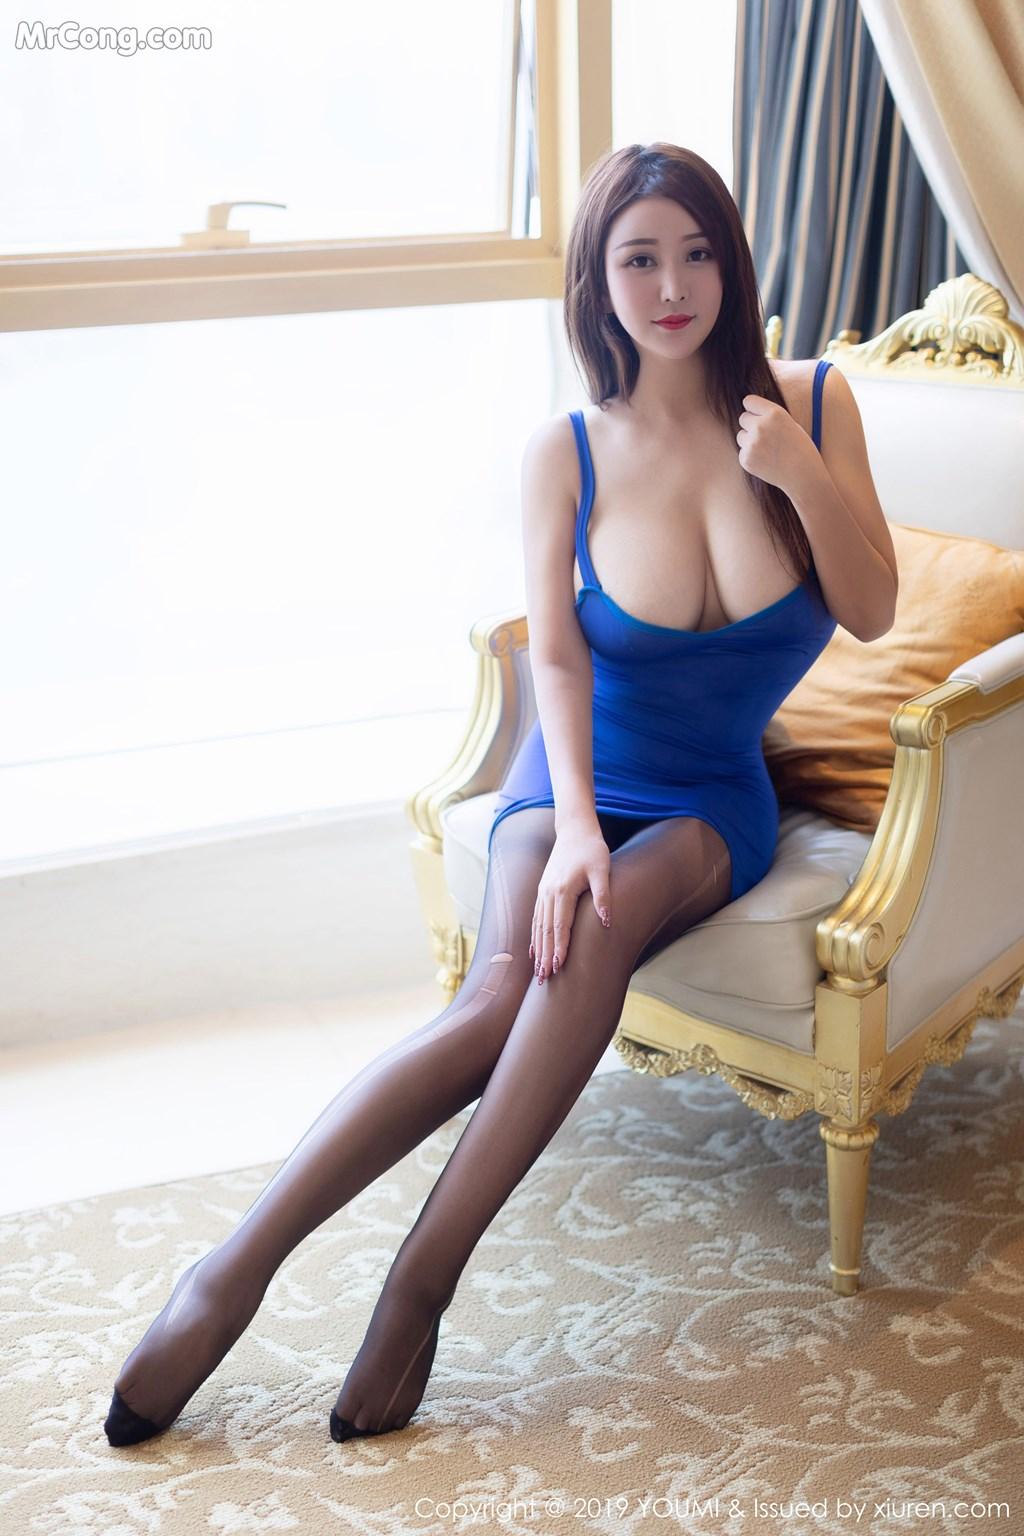 Image YouMi-Vol.341-ber-MrCong.com-001 in post YouMi Vol.341: 潘琳琳ber (56 ảnh)